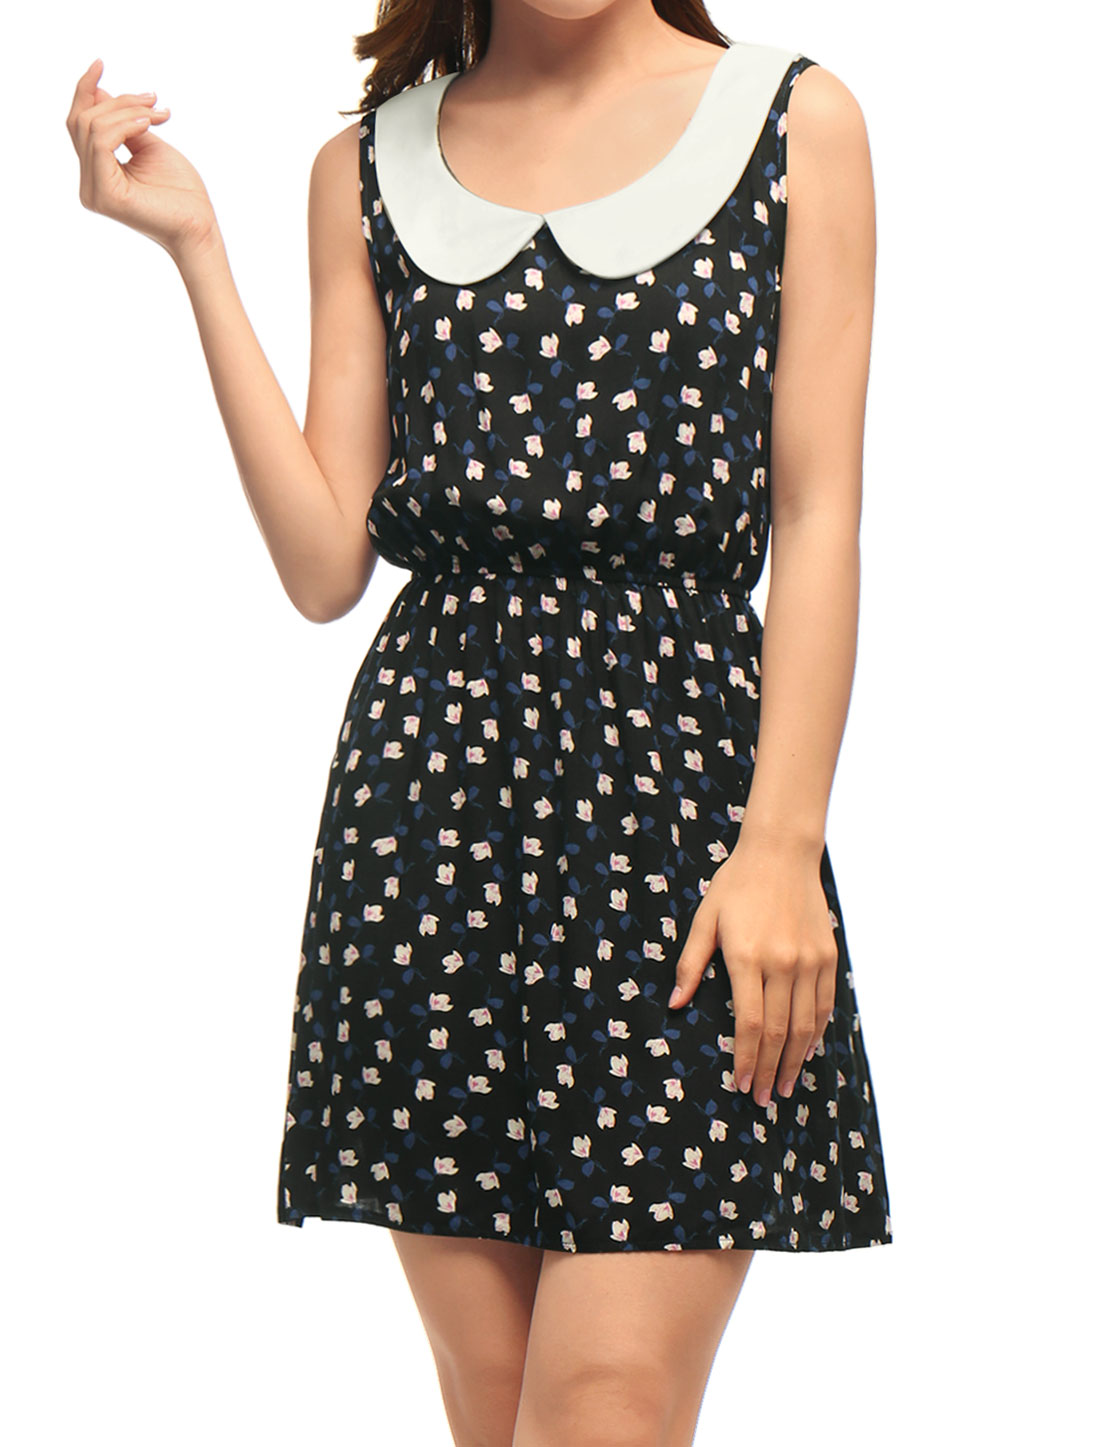 Allegra K Woman Sleeveless Doll Collar Elastic Waist Floral Mini Dress Black S